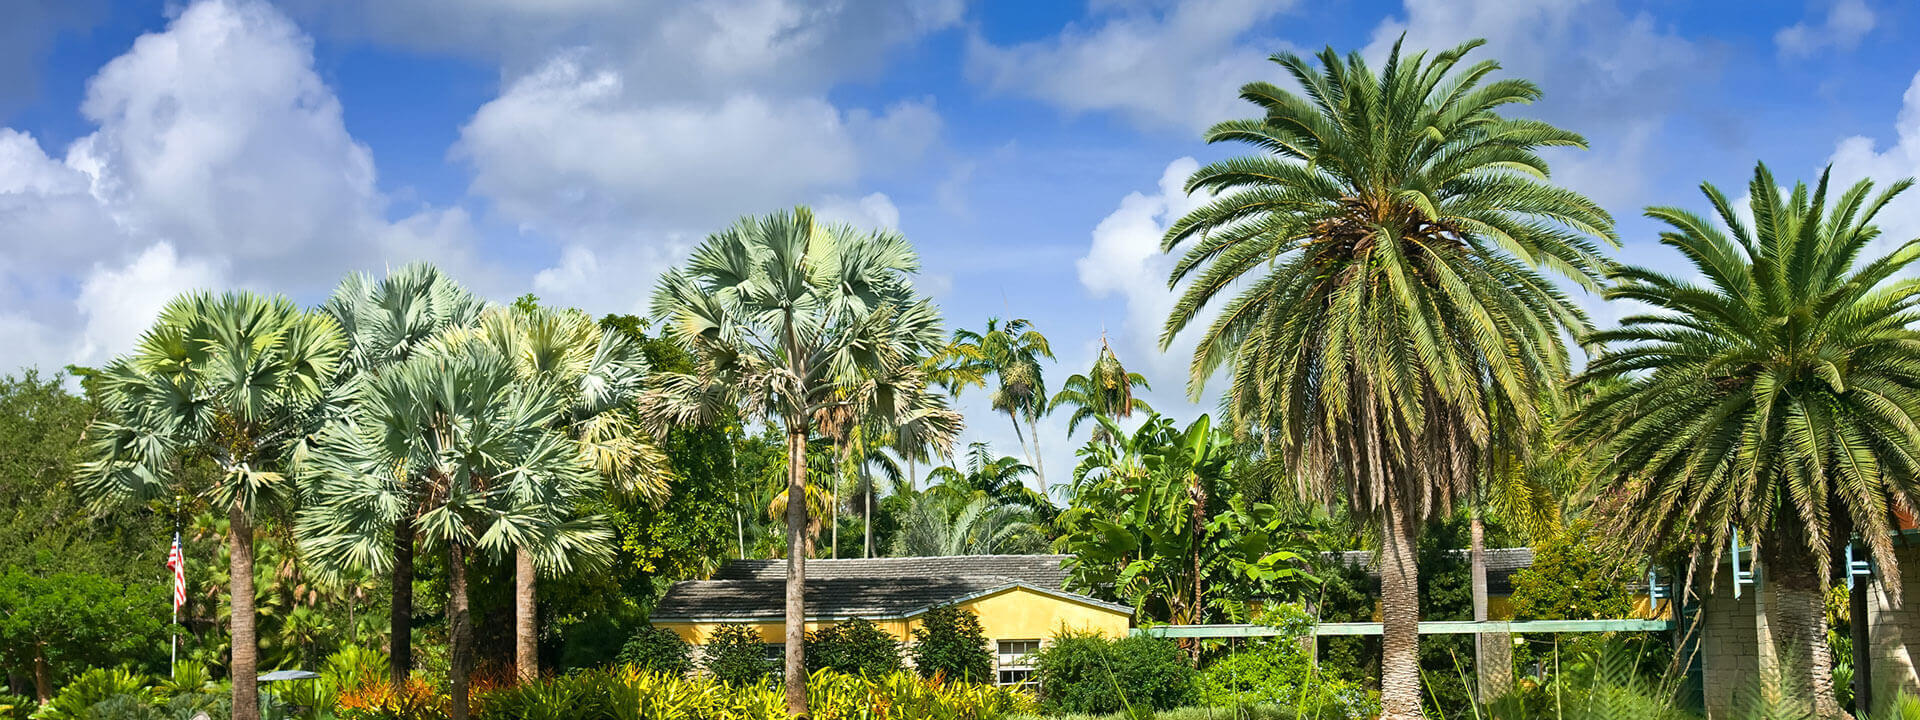 Top Things To Do In Miami Gardens